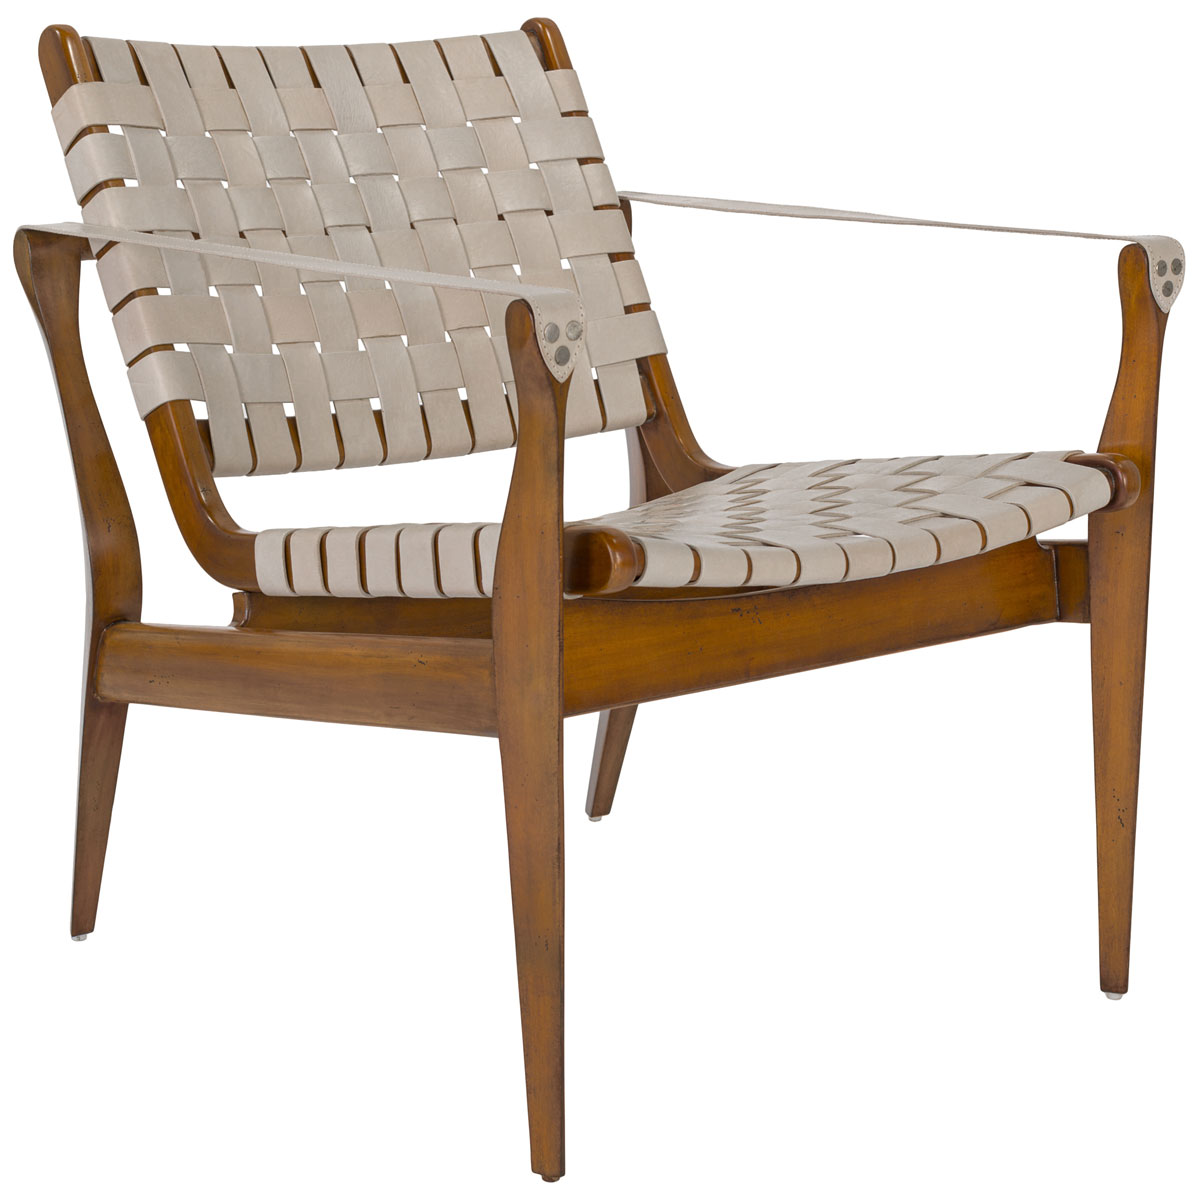 Eclectic Style To Leather Accent Chair: Woven Leather Safari Chair- White